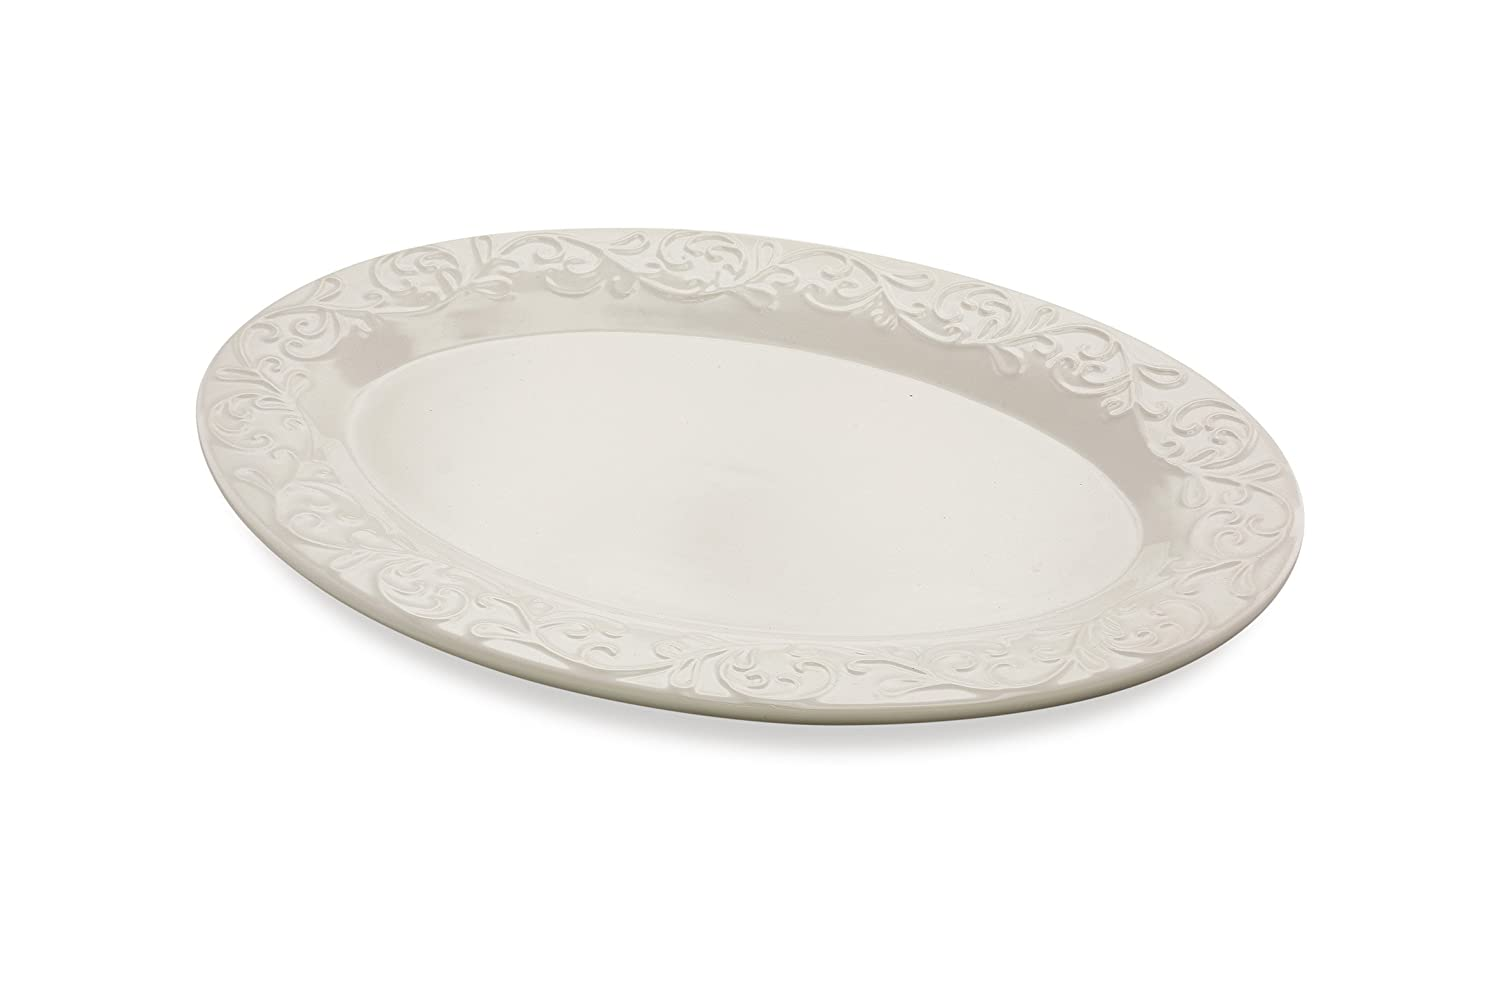 KOVOT Ceramic Oval Platter | Serving Platter | Measures 15 1/4